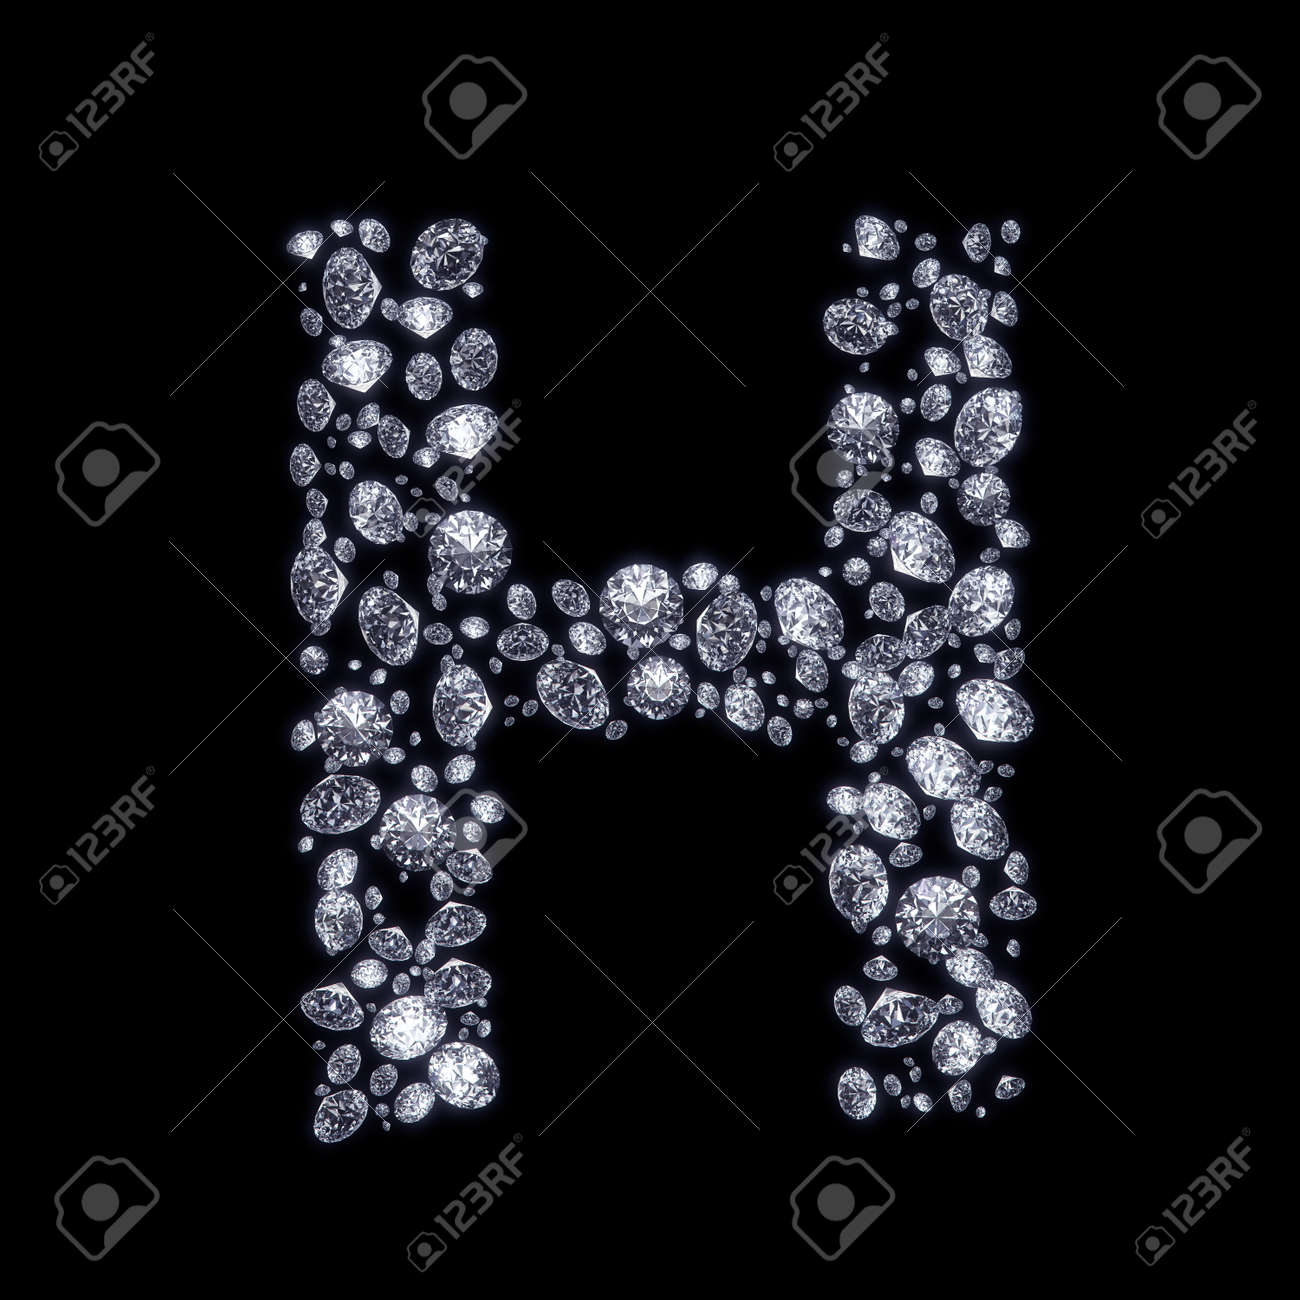 Find great deals on eBay for letter h necklace and letter h bracelet Shop with confidence